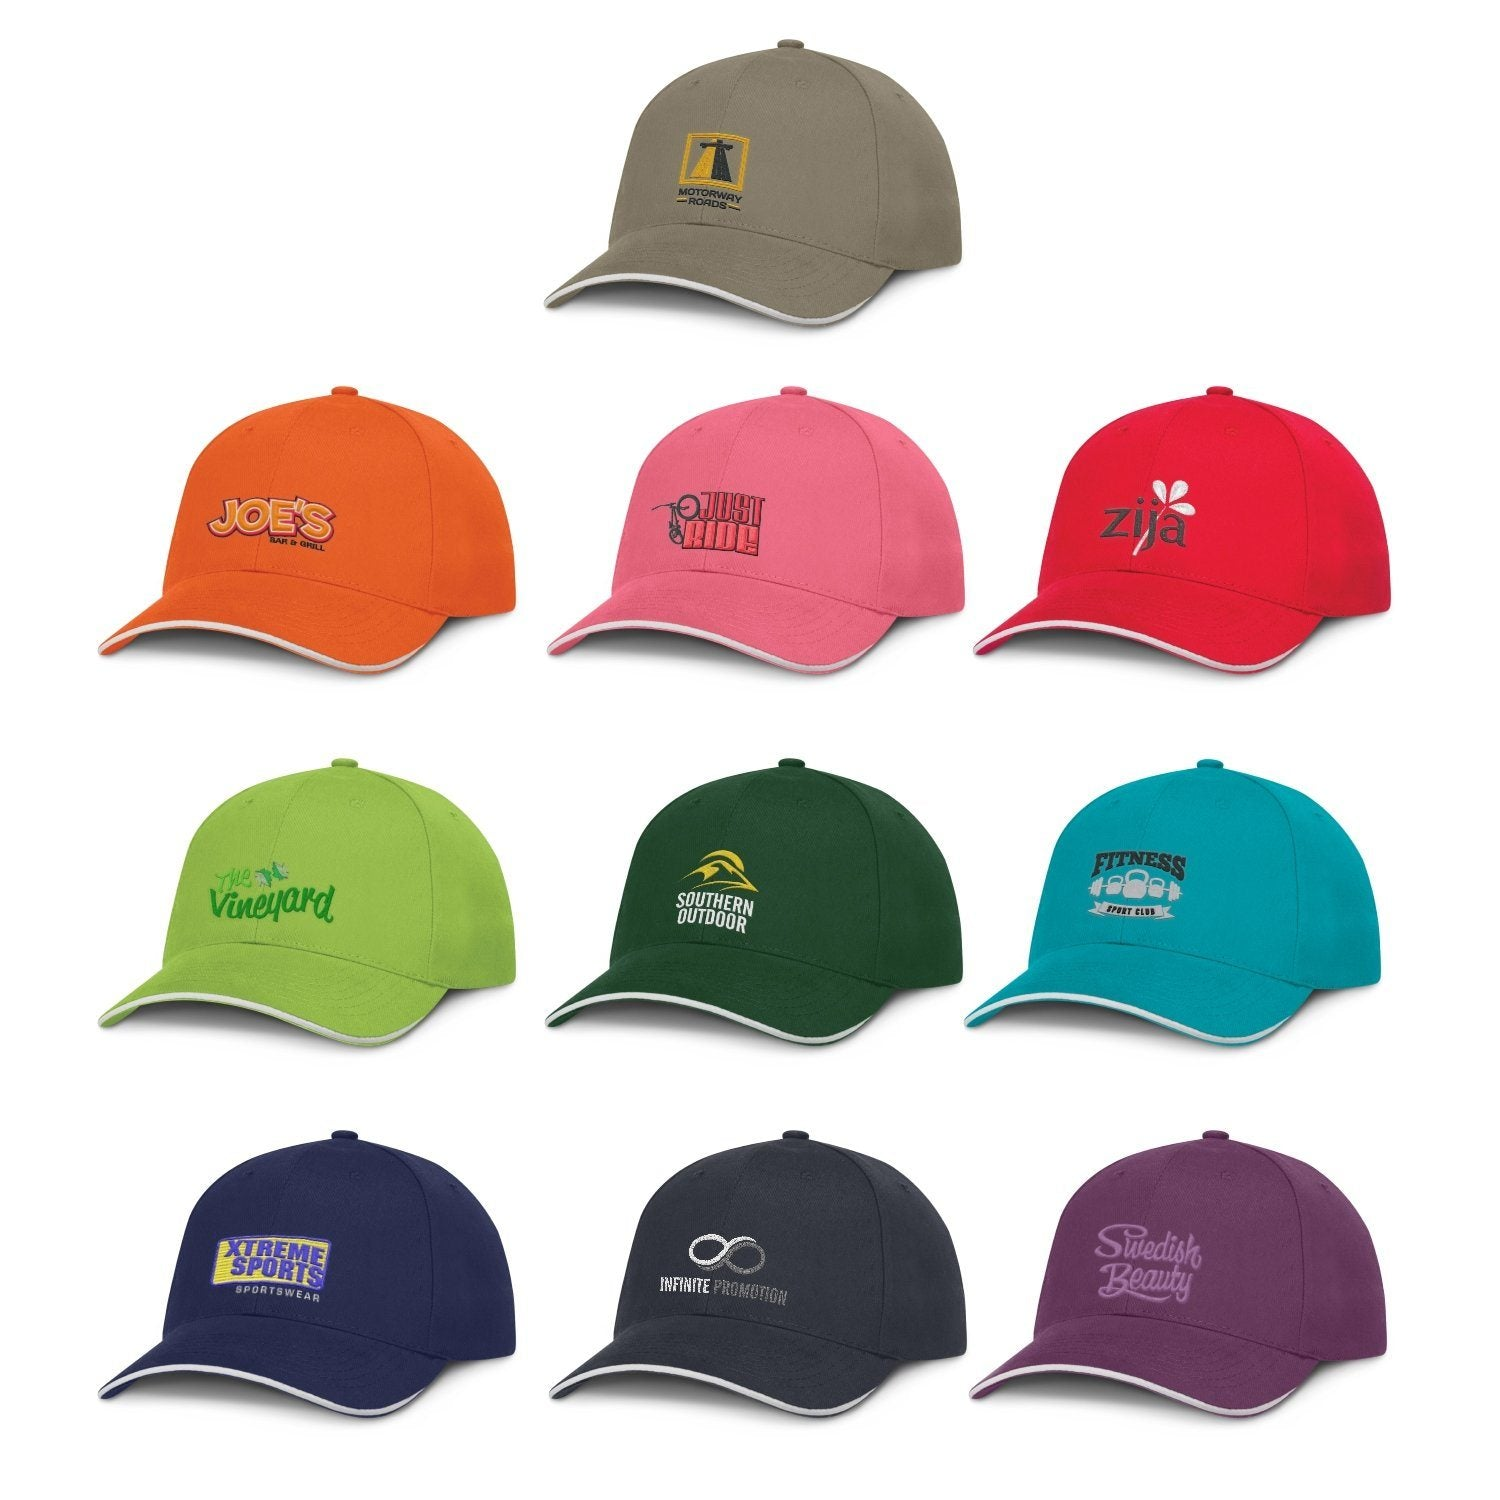 Premium Cotton Cap - White Trim(SHW-18T) - greenpac.com.au